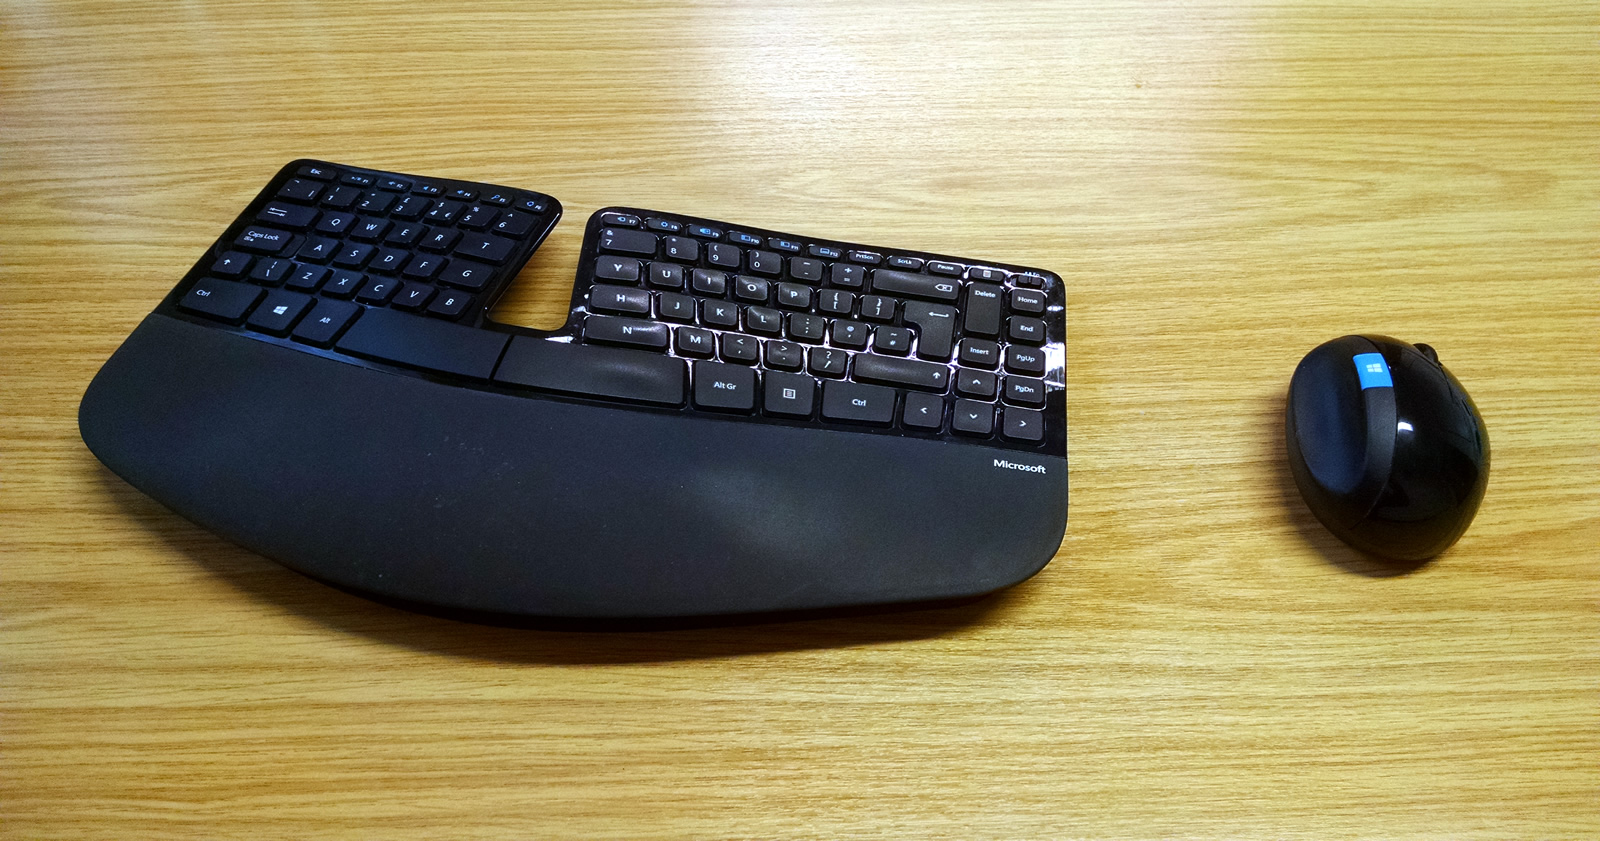 Sculpt keyboard and mouse